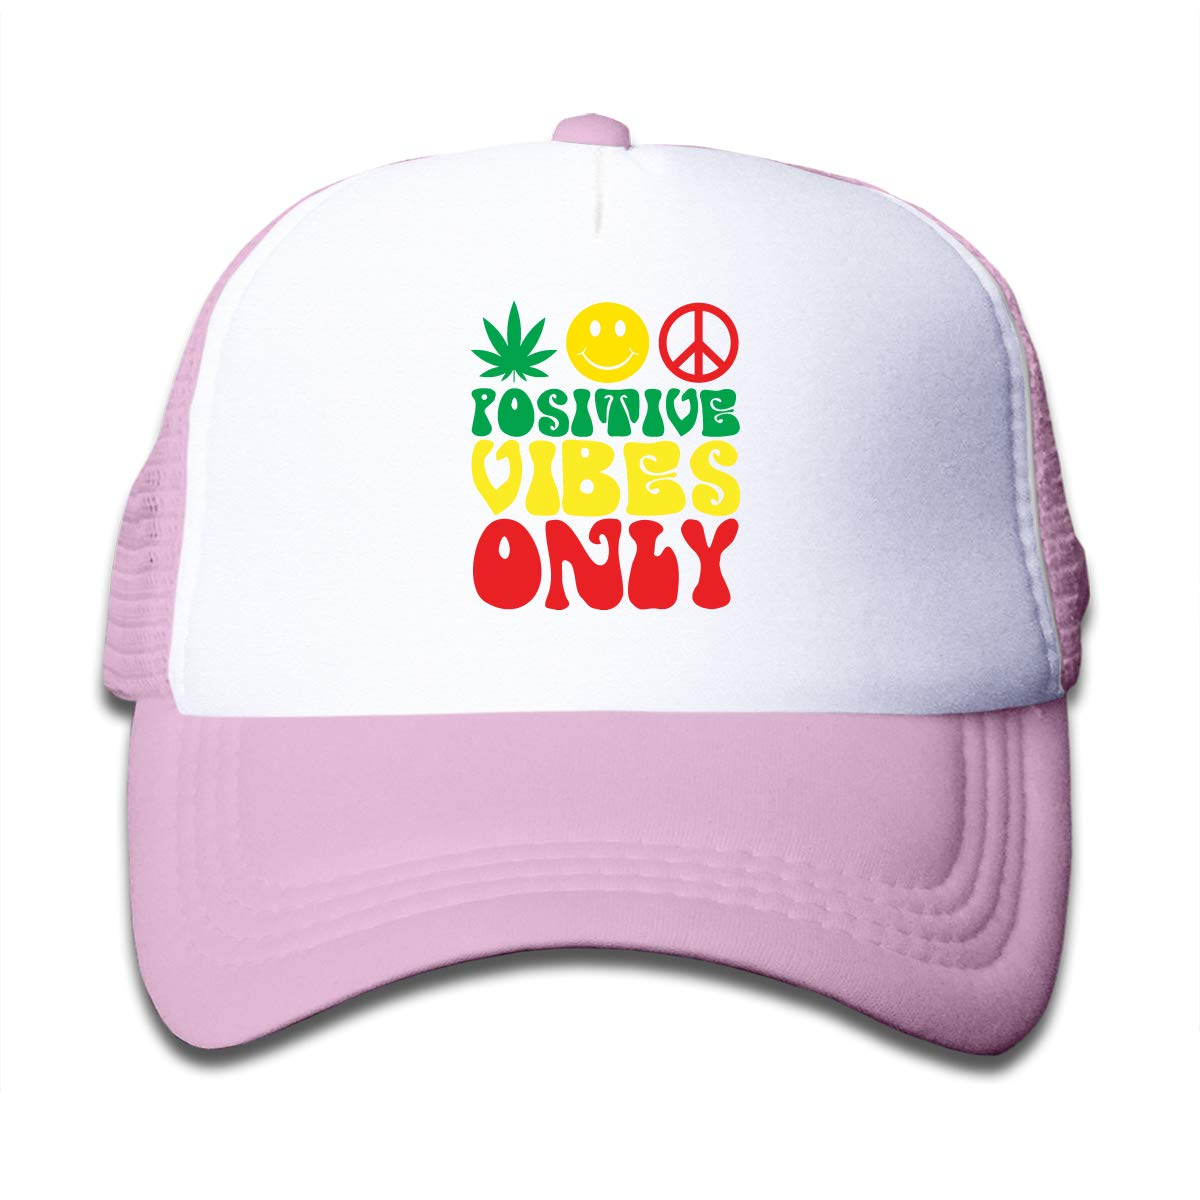 Positive Vibes Only Kids Summer Caps Black